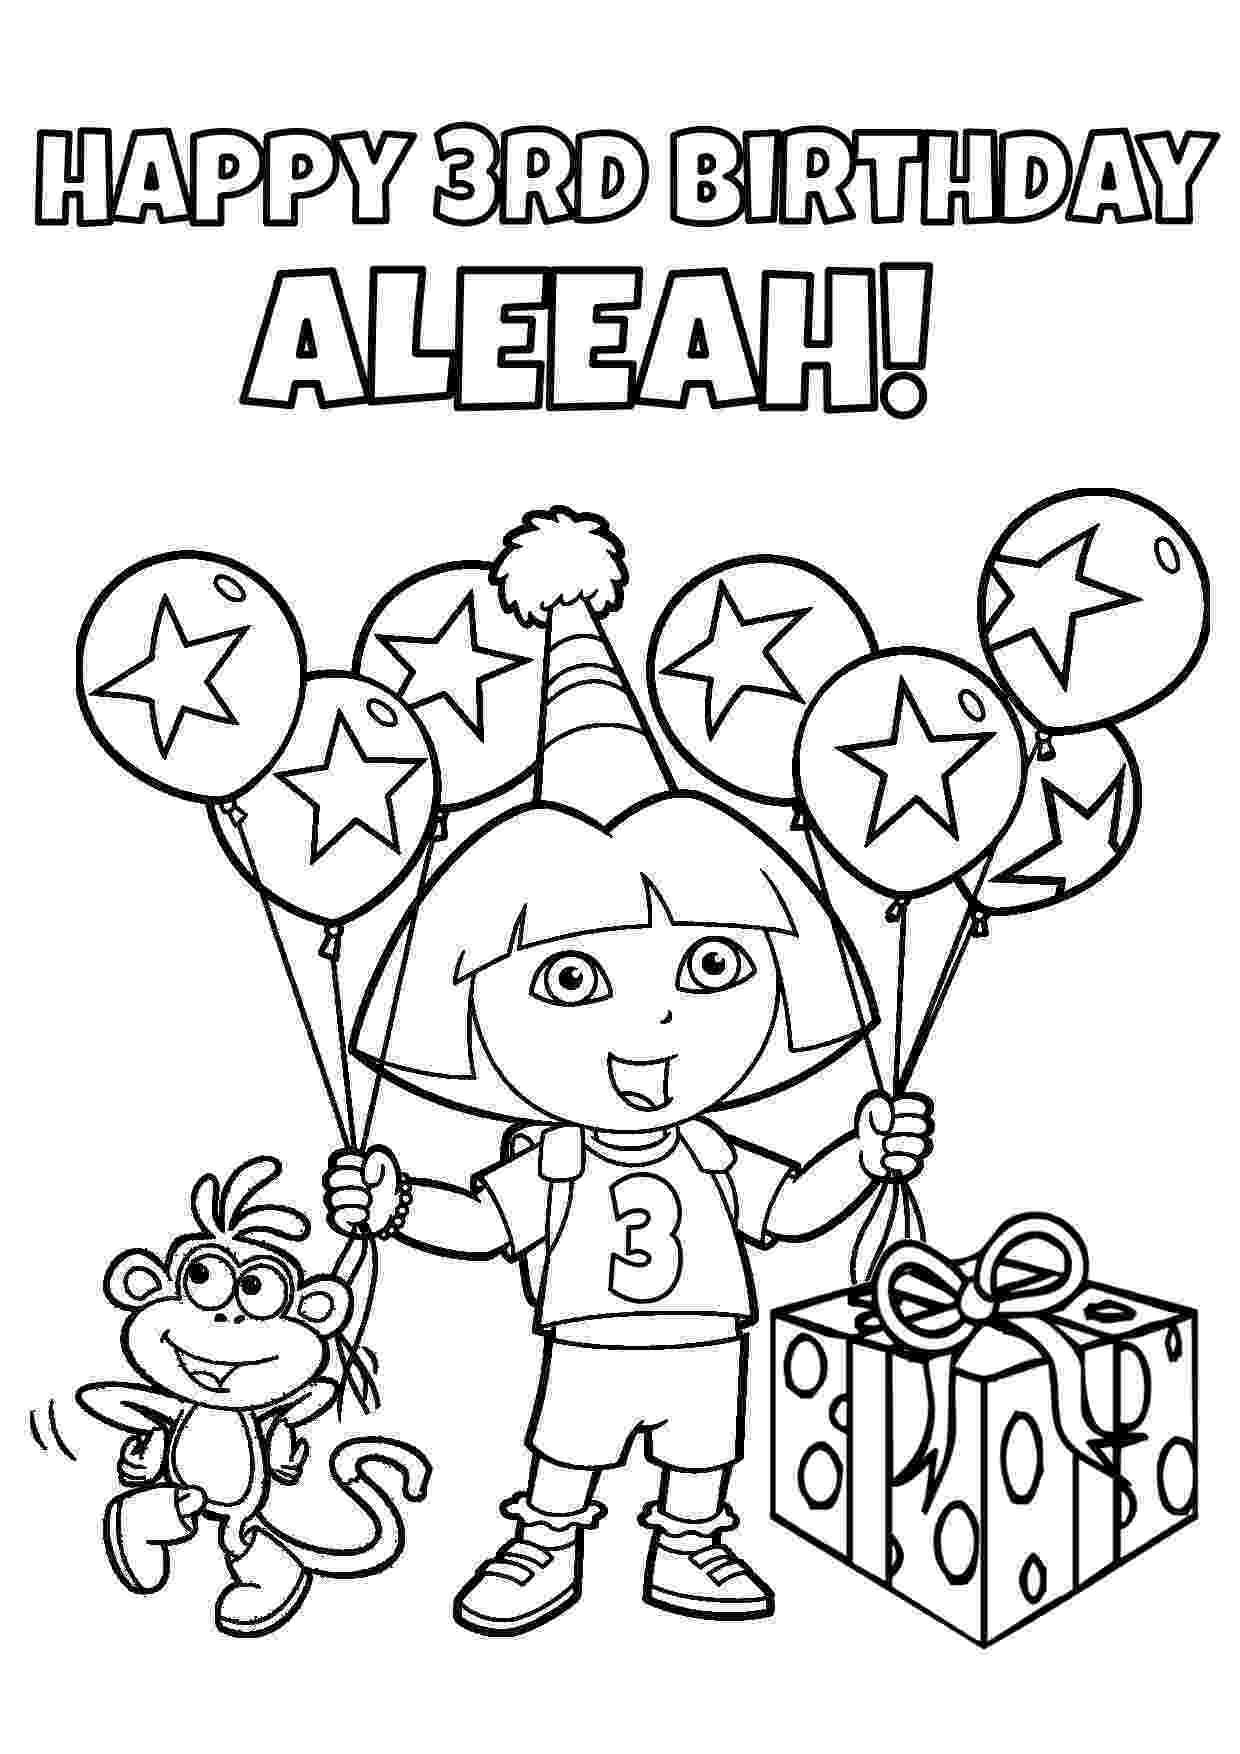 birthday party coloring page dragon birthday party invitation coloring pages page coloring birthday party